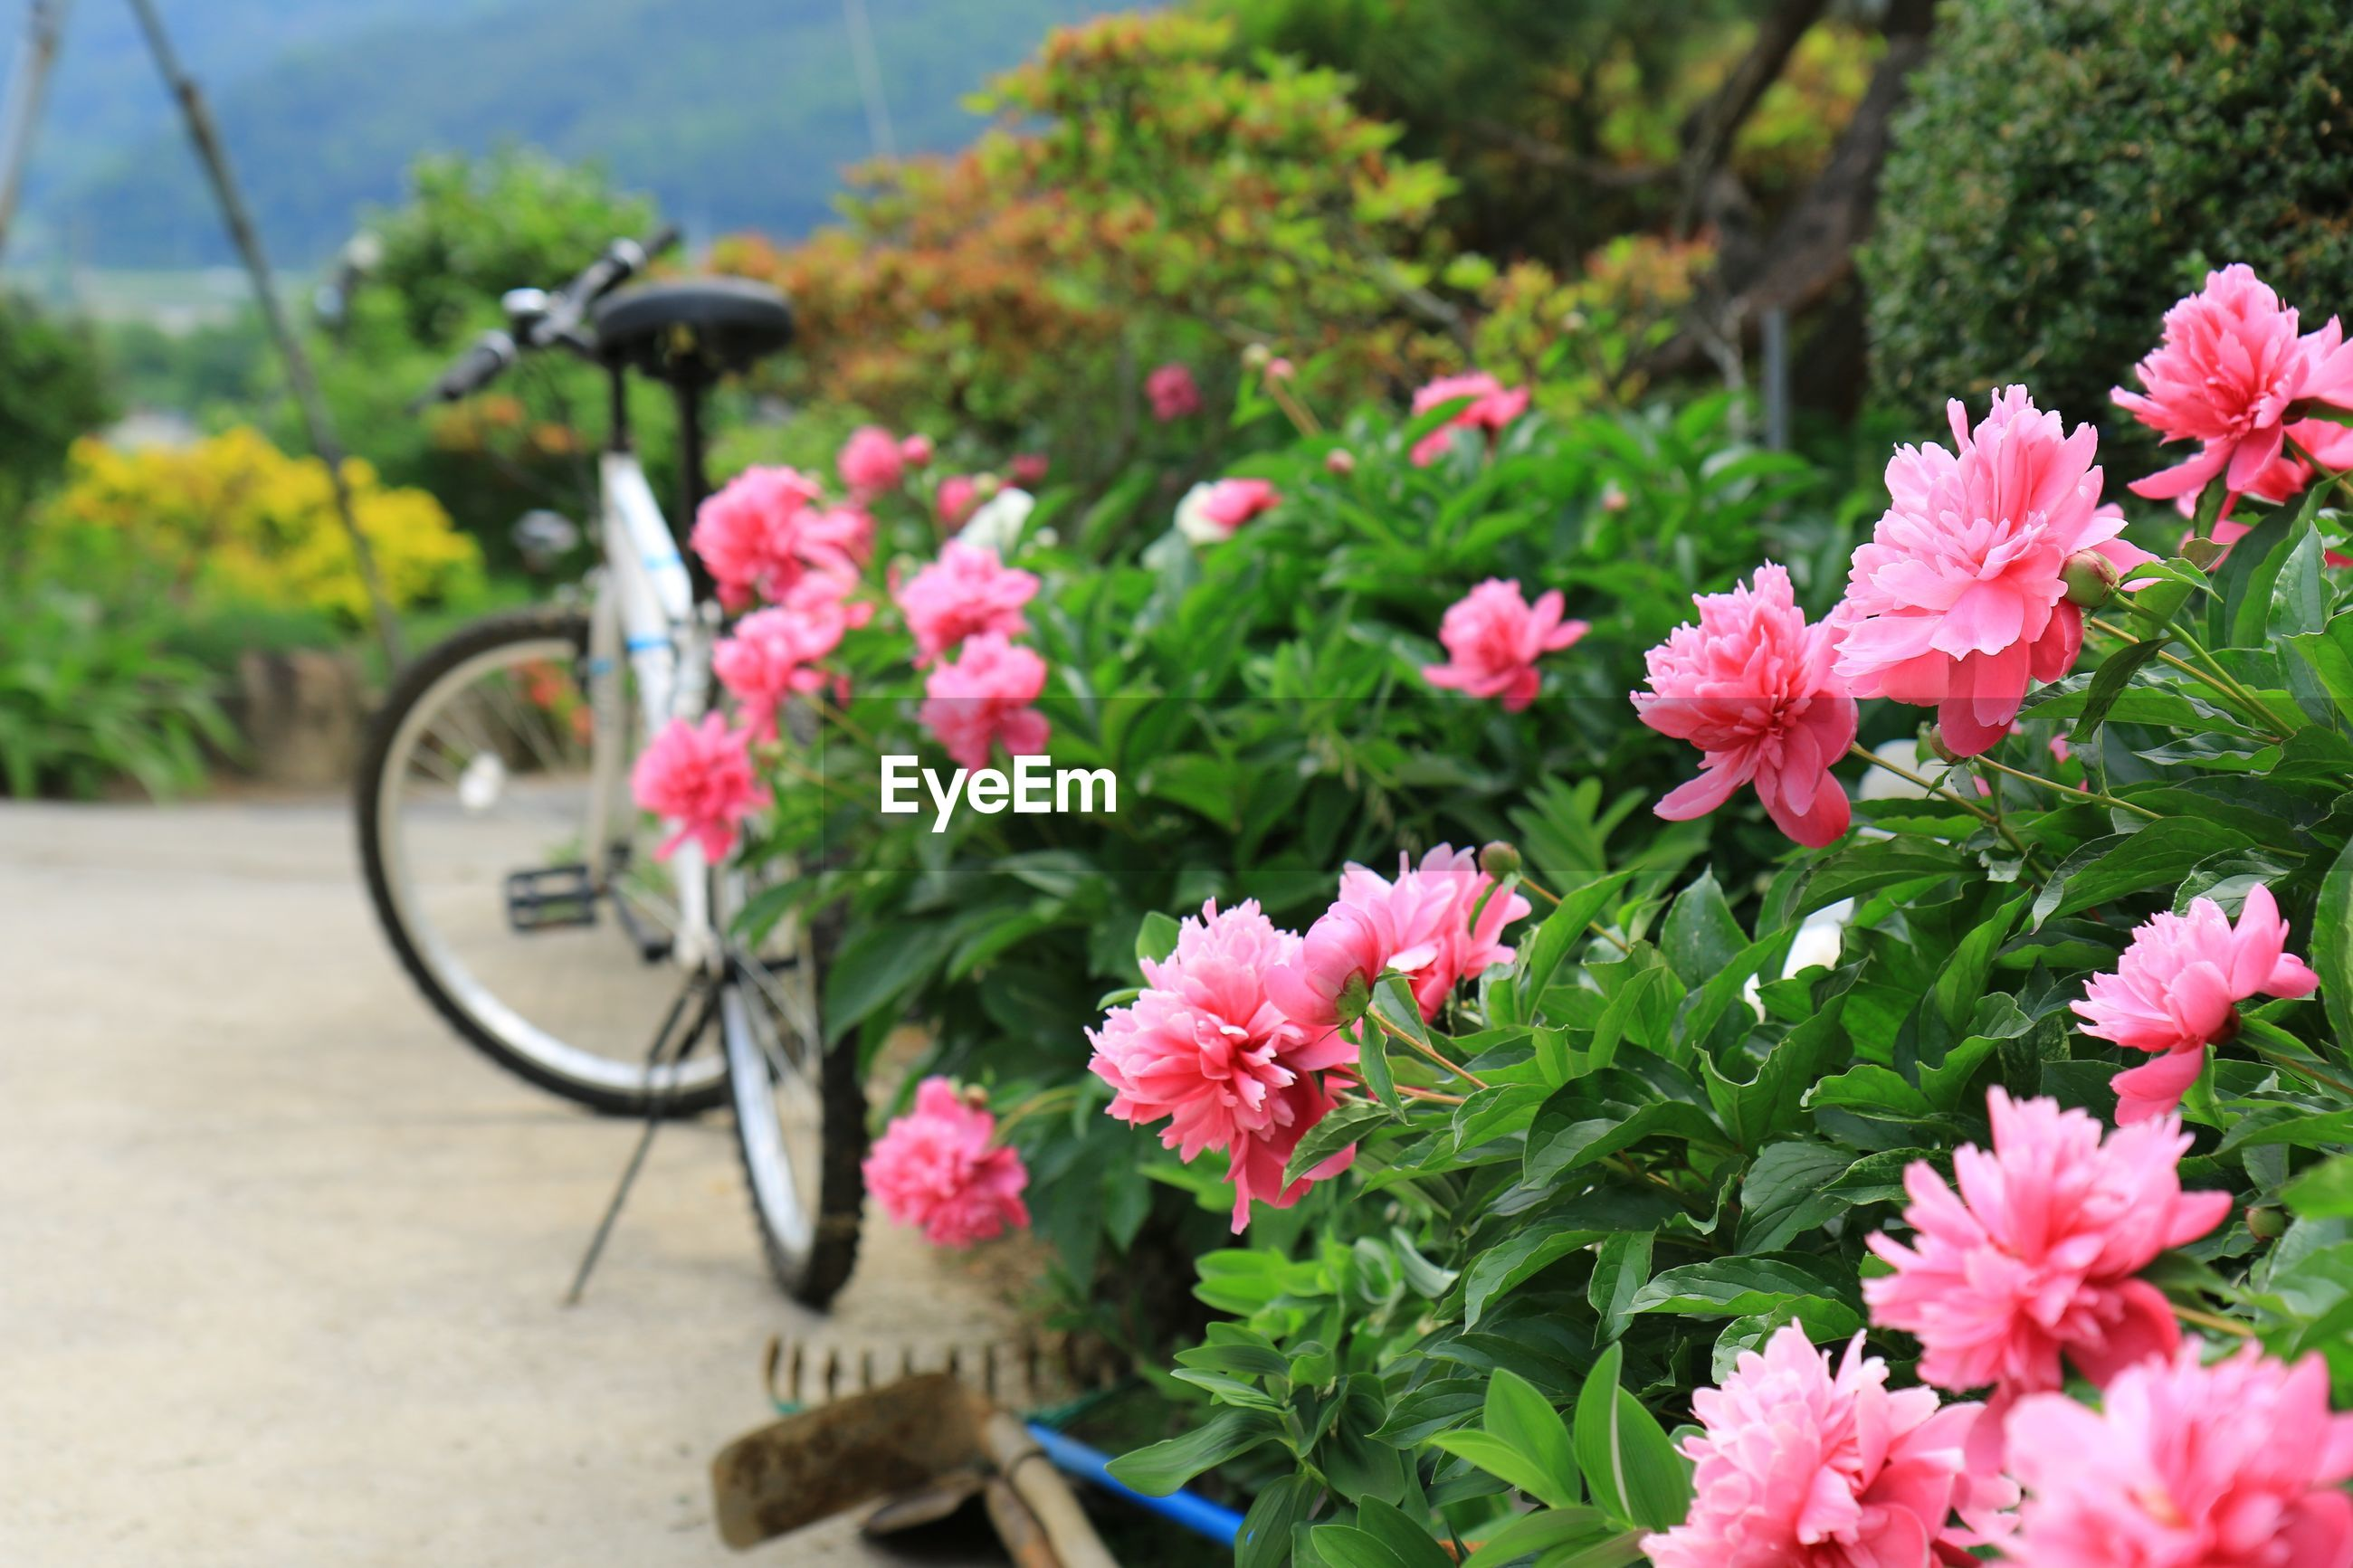 CLOSE-UP OF FRESH PINK FLOWERS BLOOMING BY PLANTS